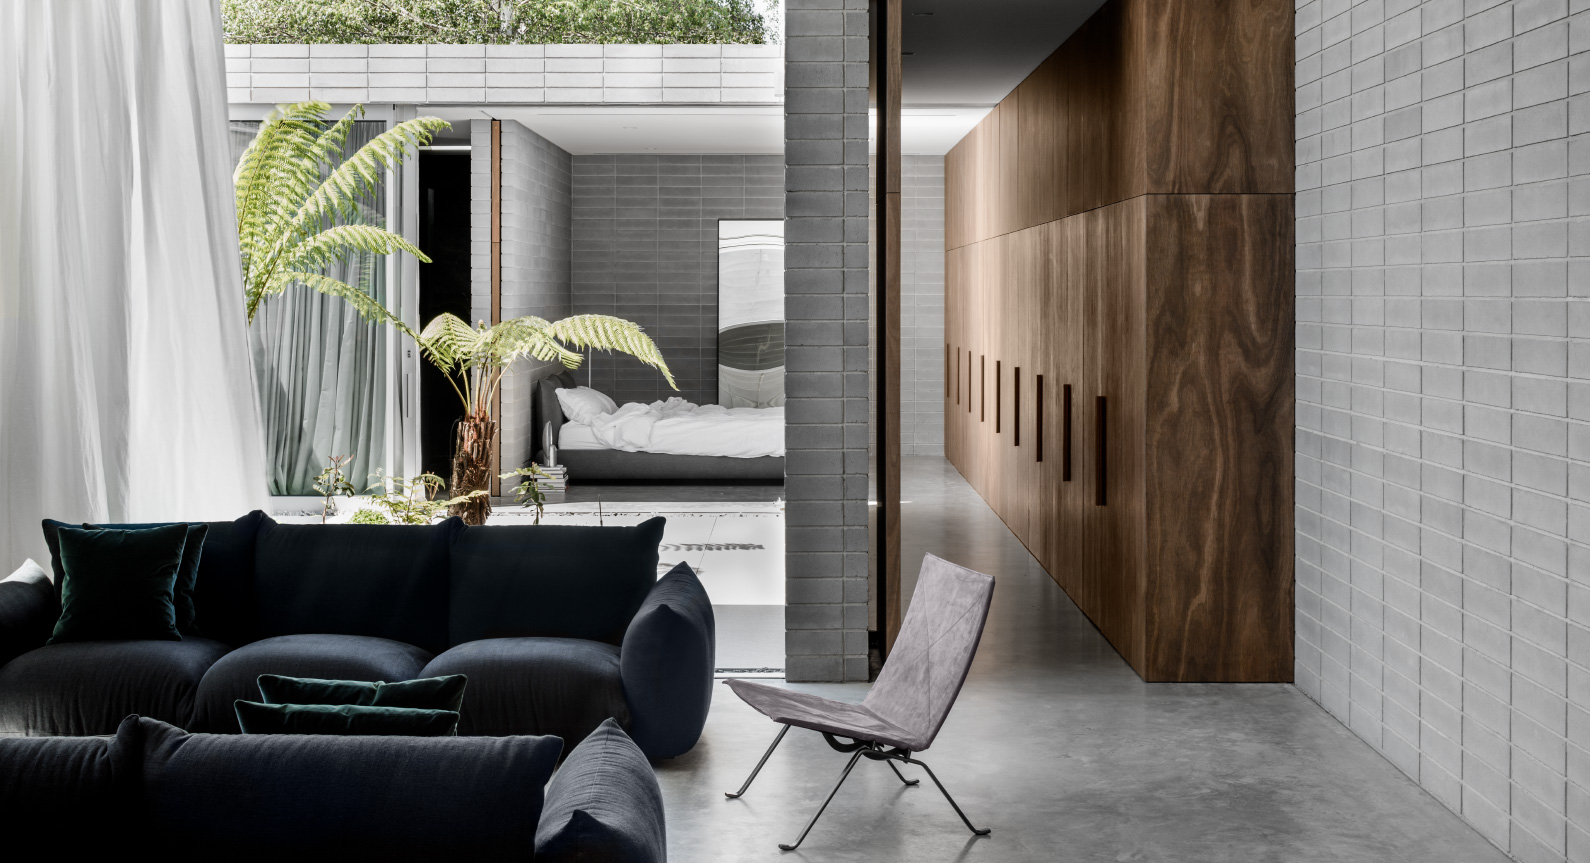 Ritz & Ghougassian's Minimalist Melbourne Home Is As Good As City Living Gets